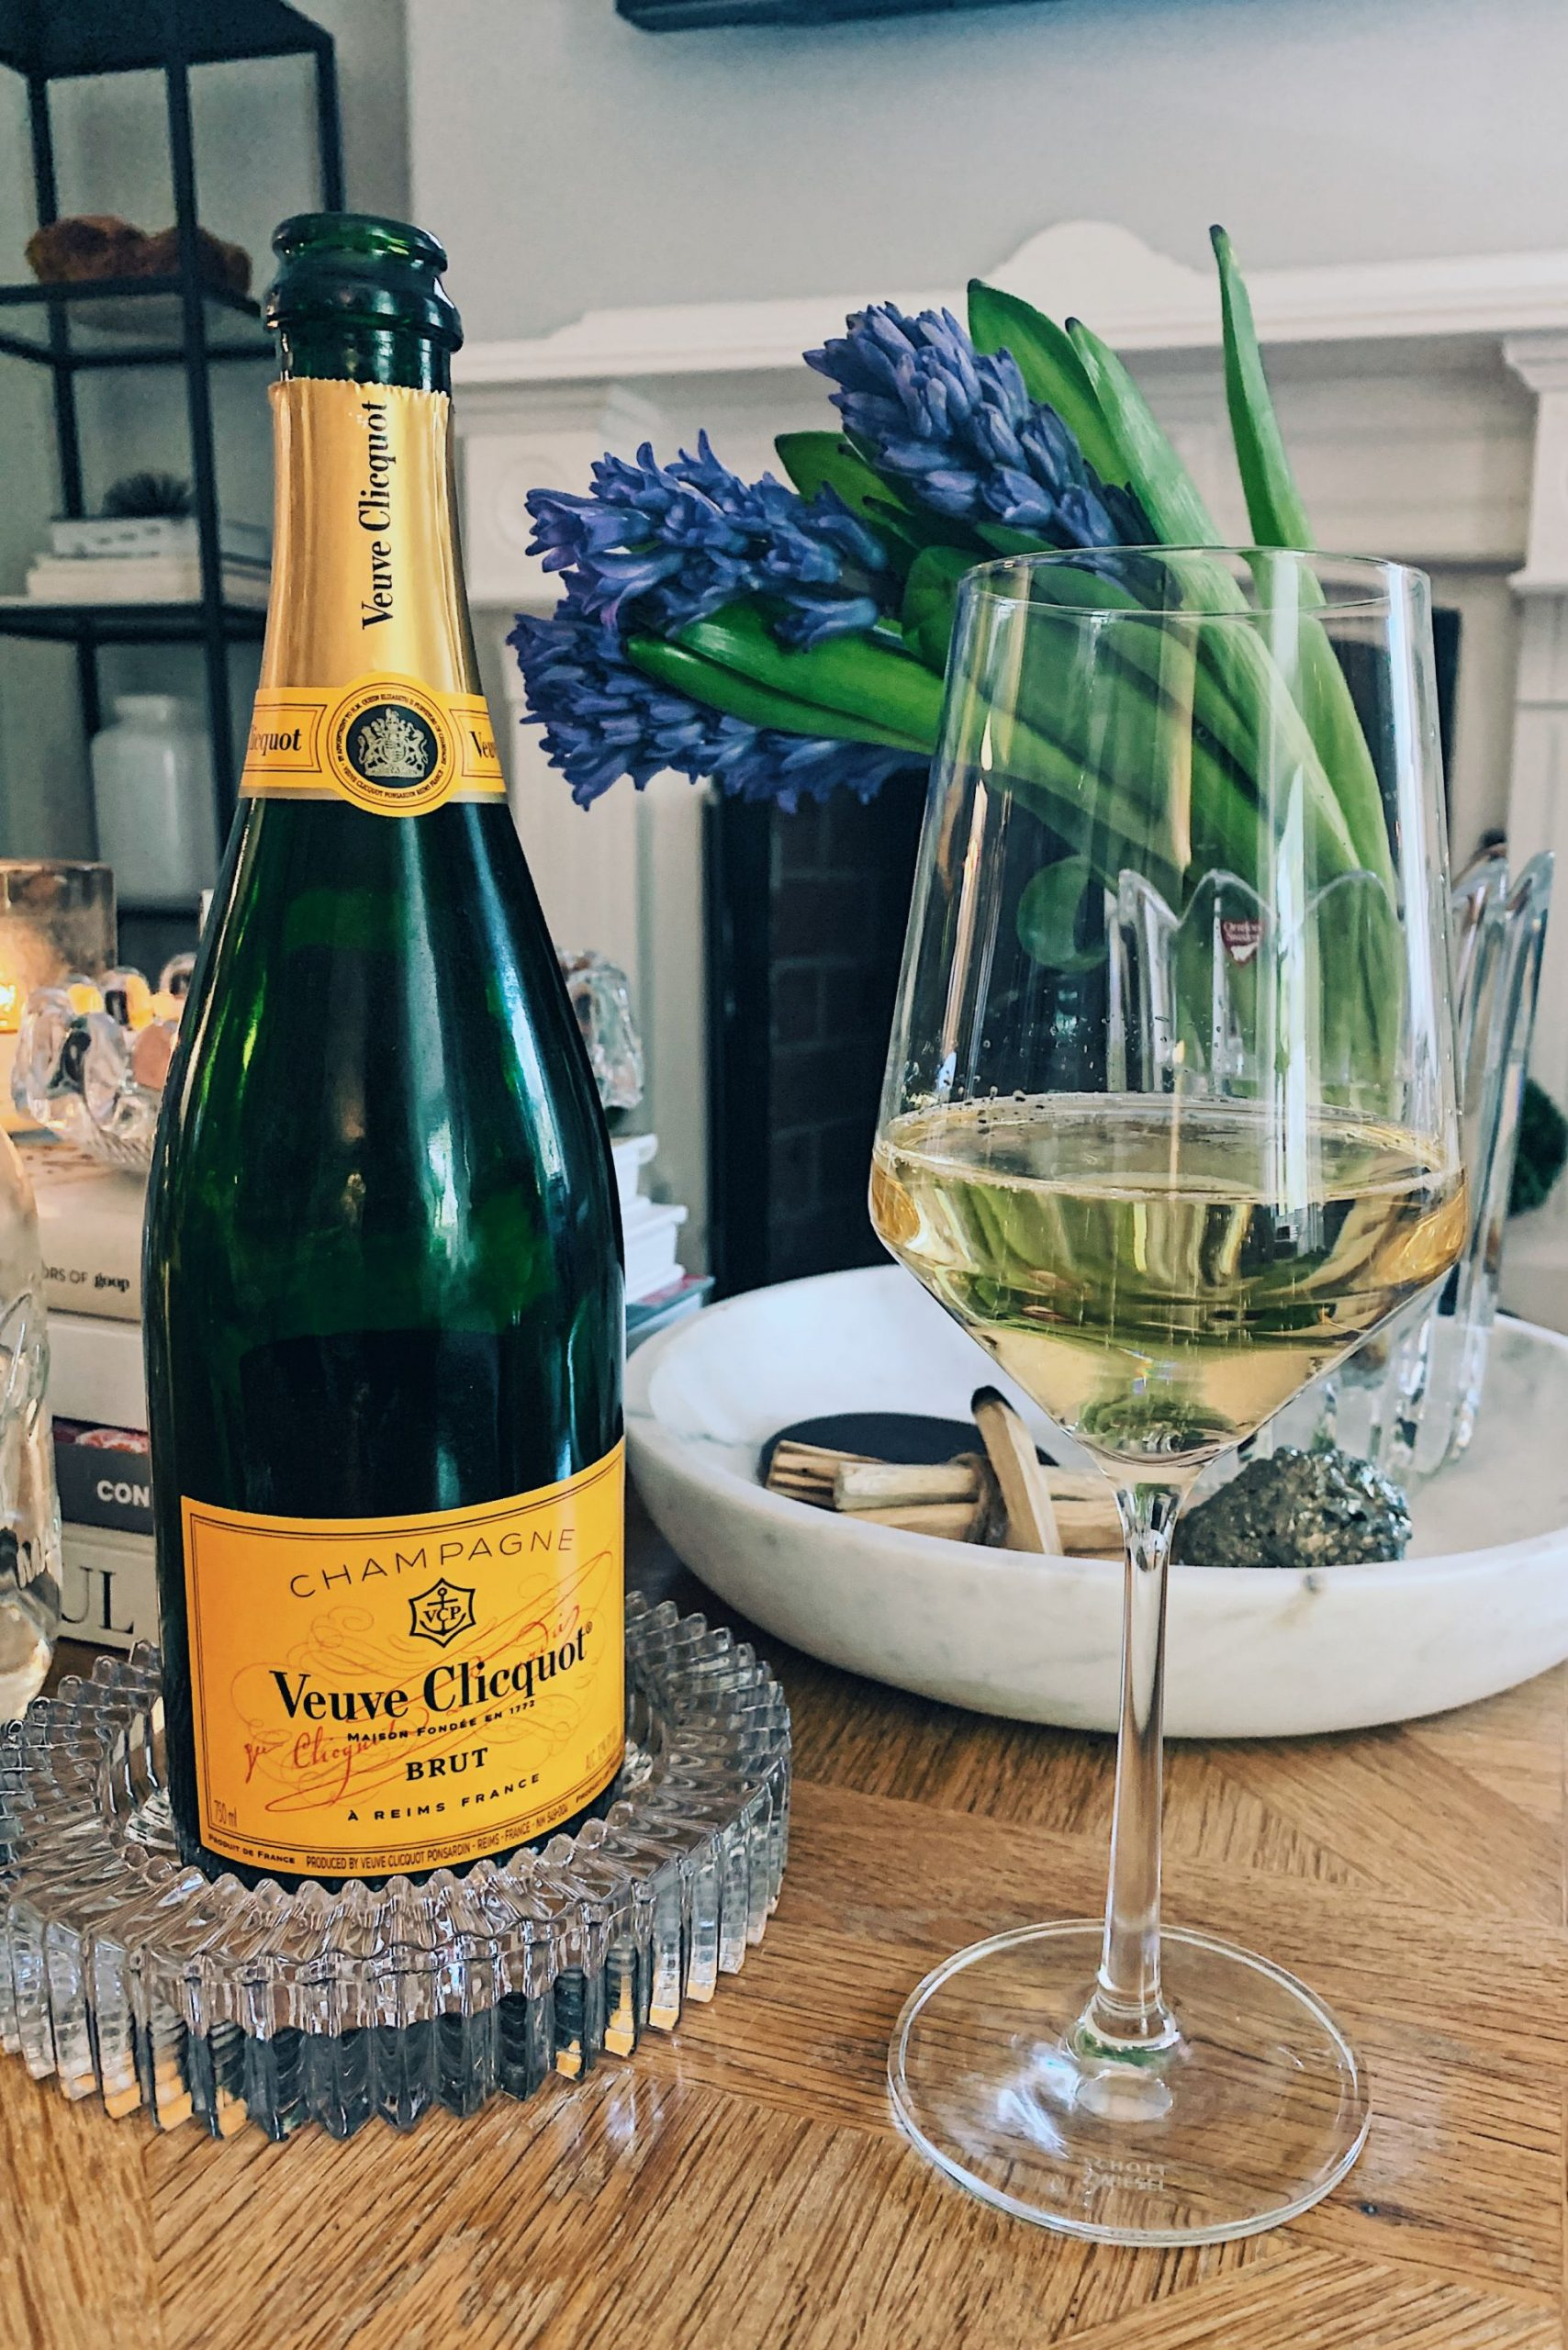 Veuve Clicquot Brut | Travel blogger Meaghan Murray shares a post o Nantucket, Massachusetts on her blog The Stopover